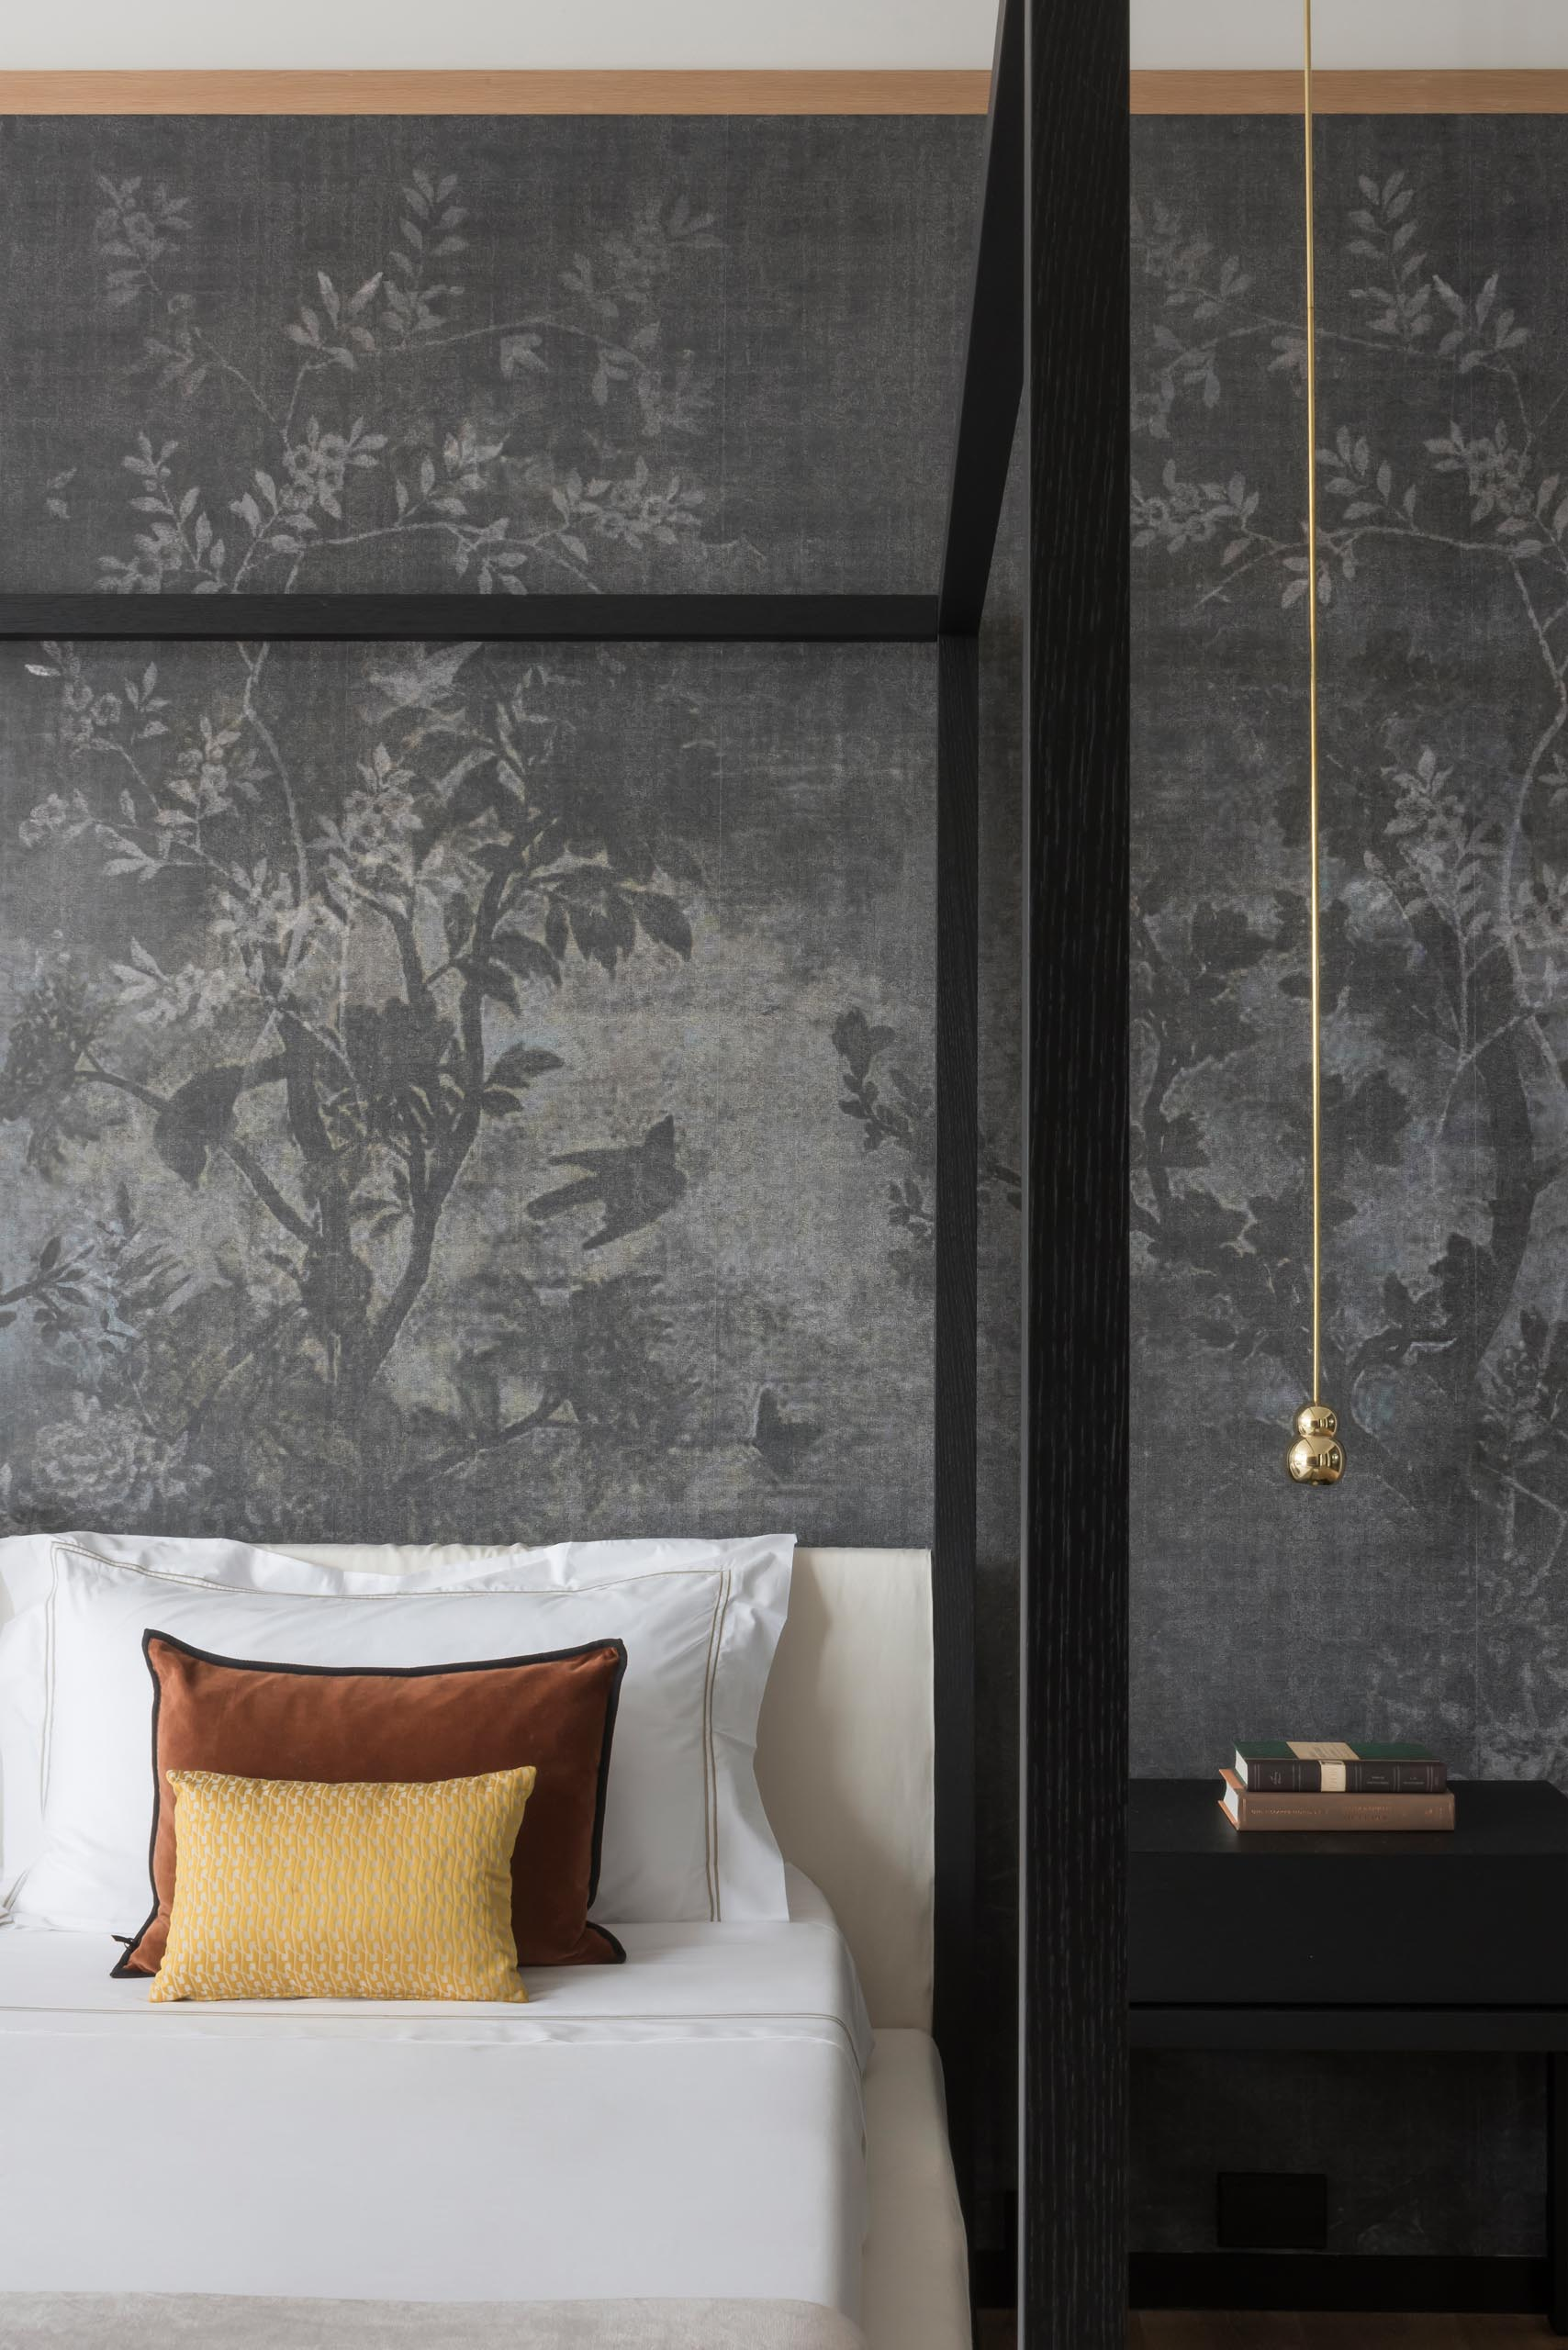 A modern bedroom with a wallpaper that features a floral print.